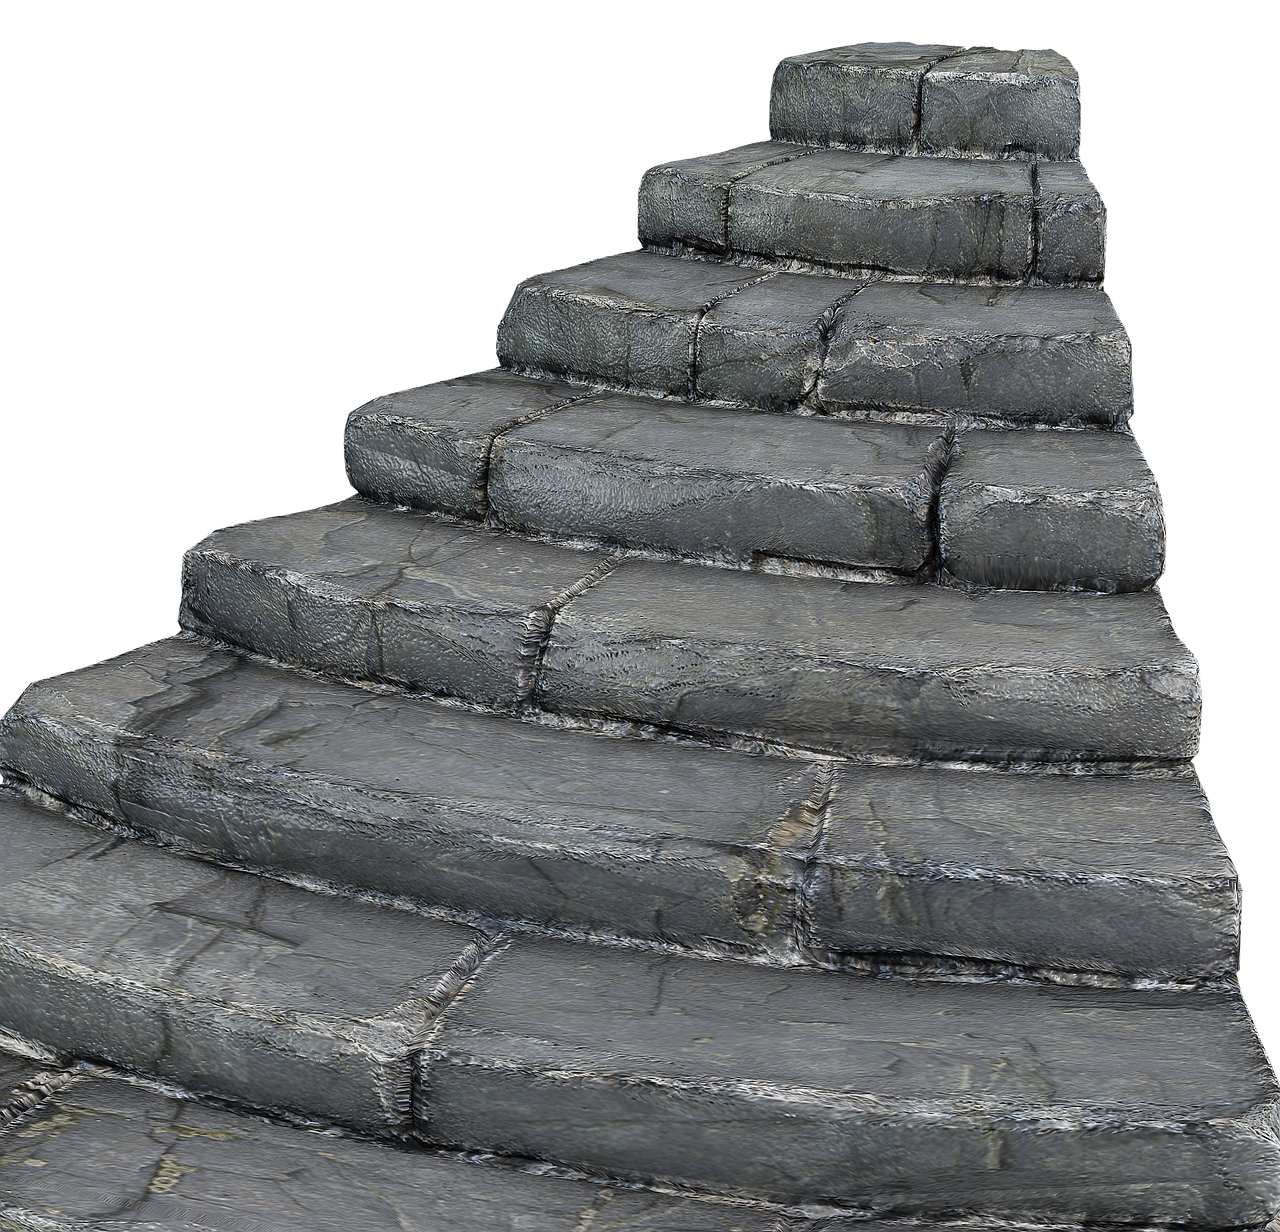 Stairs transparent stone. Gradually rise staircase stairway